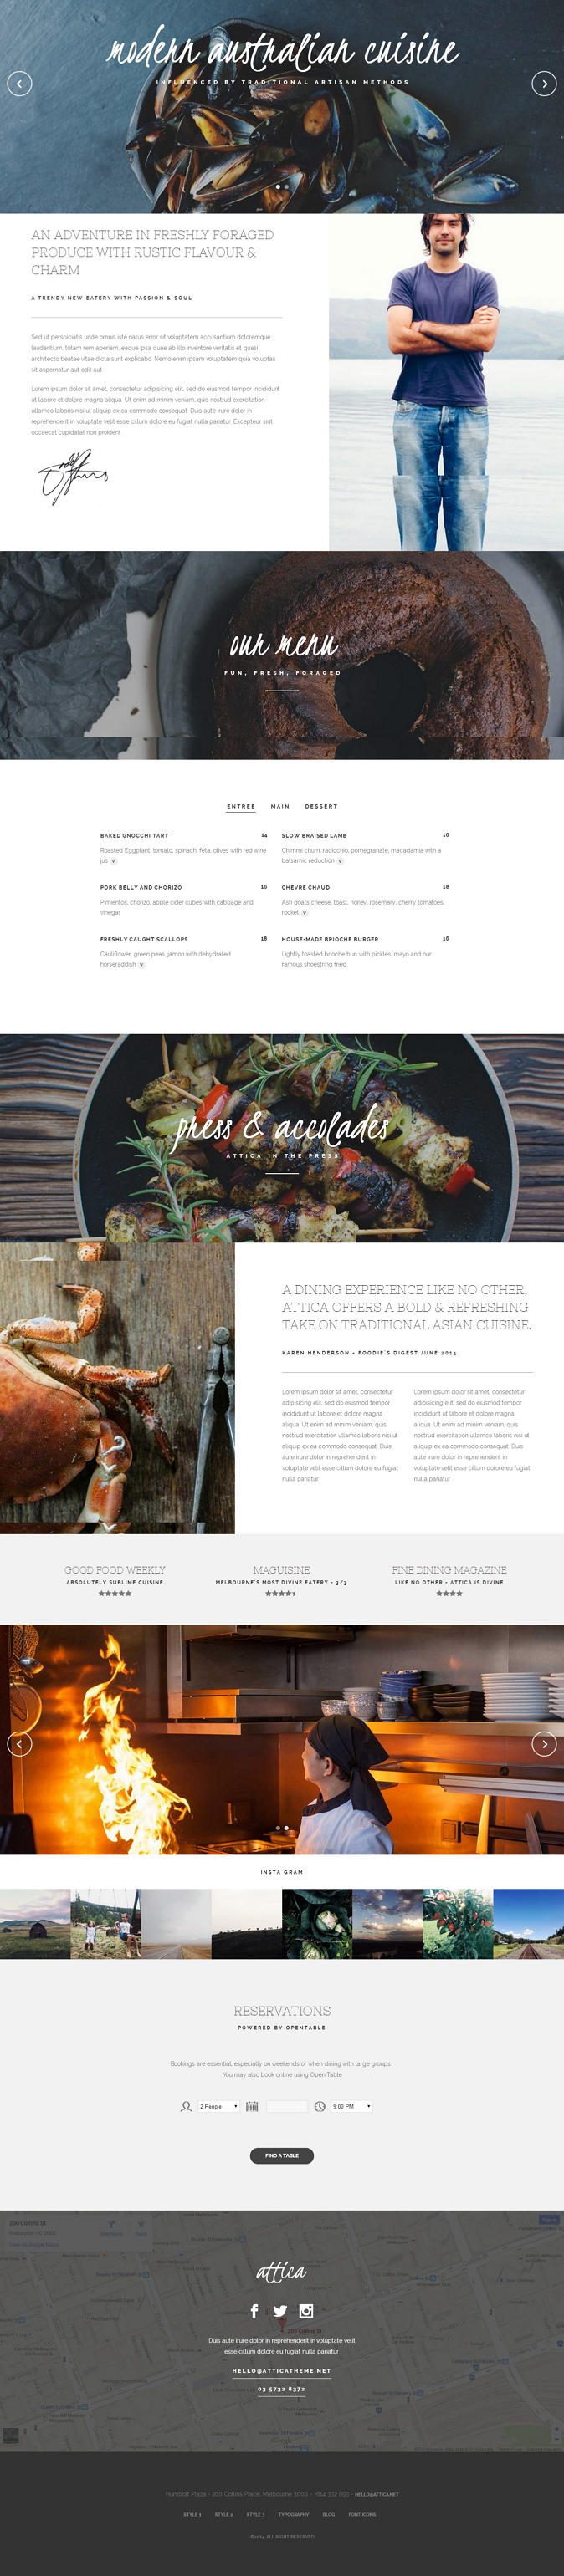 Attica is an One-page Restaurant Joomla Template. It has all the features your restaurant needs  ...